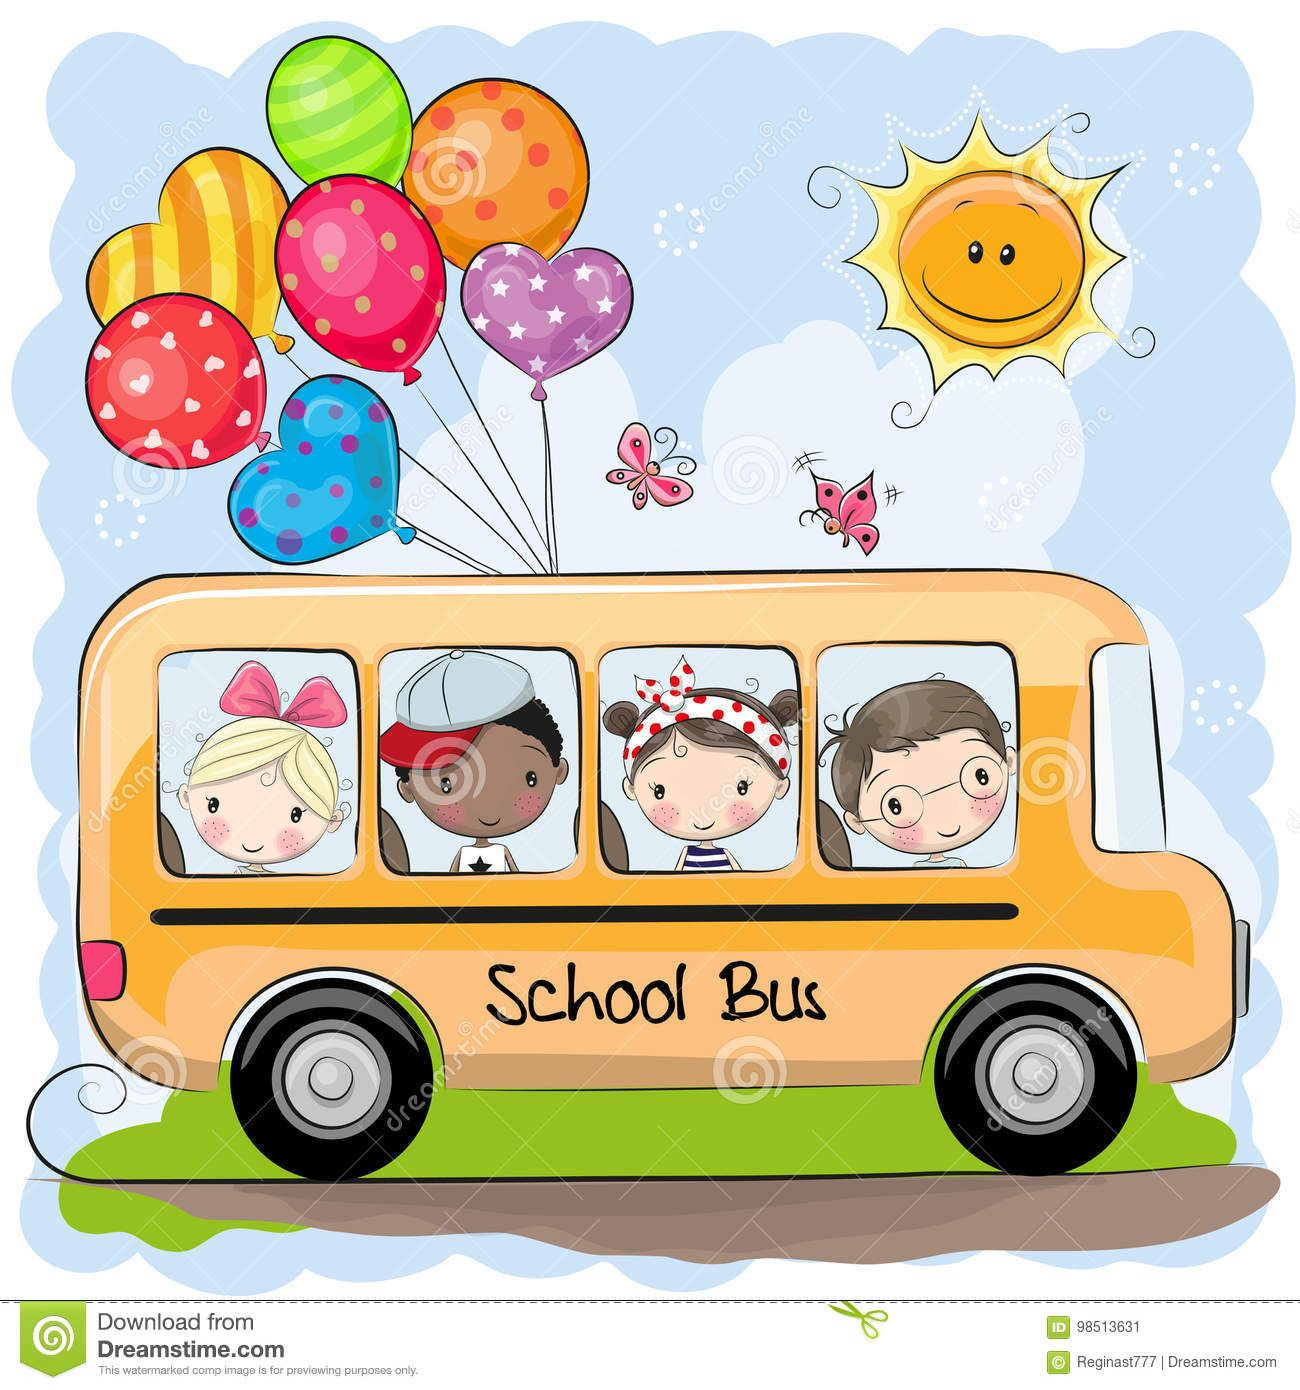 Illustration About School Bus And Four Cute Cartoon Kids